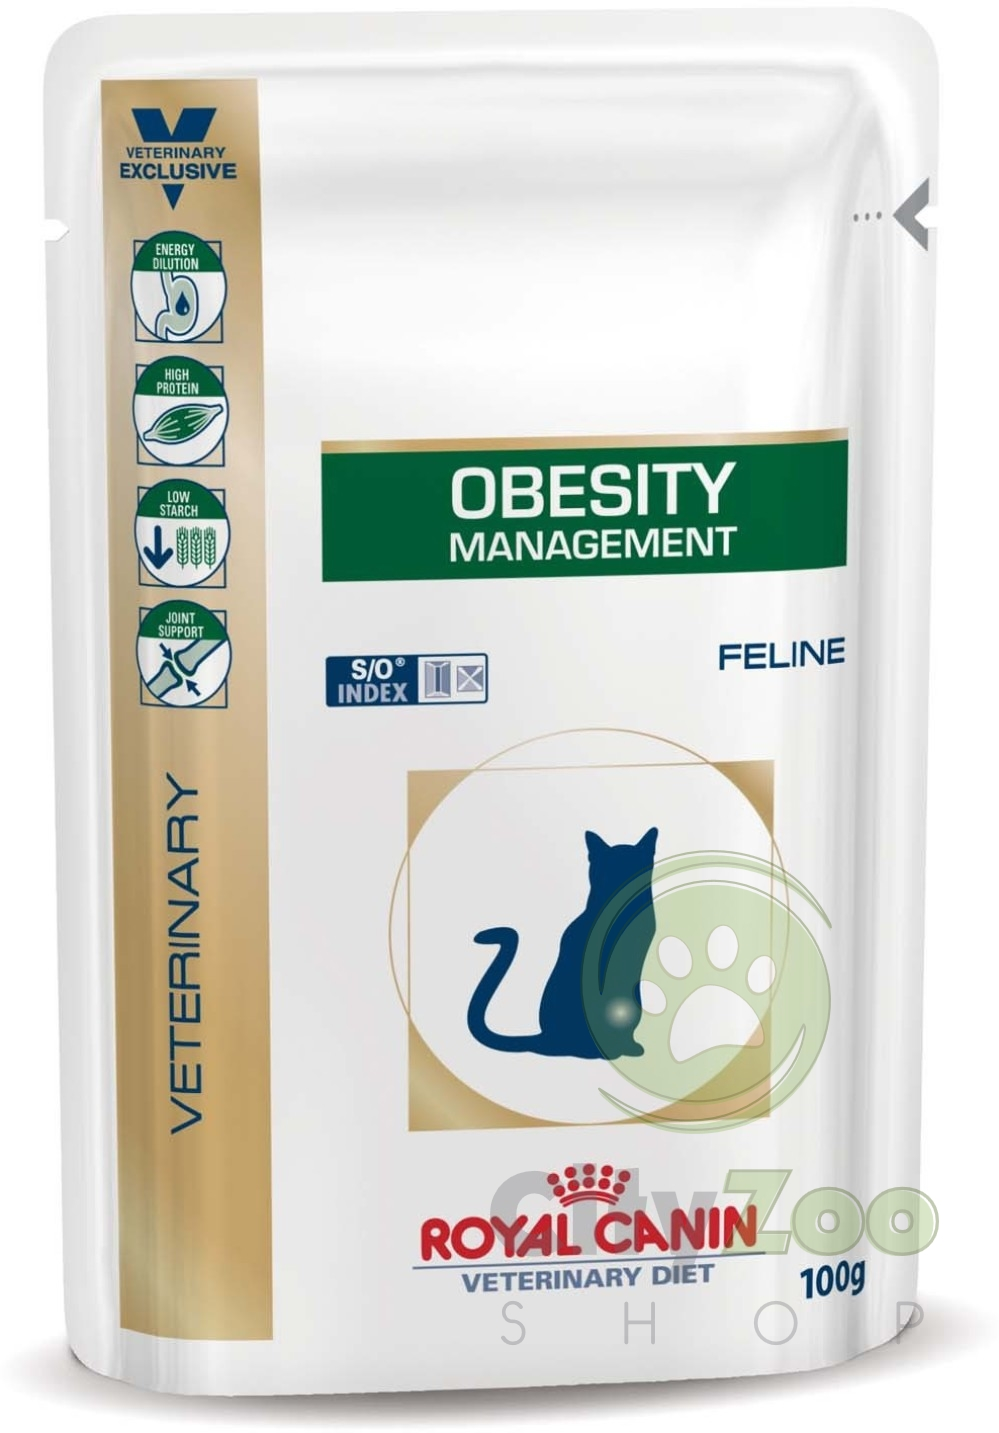 zoo/Royal_Canin_Obesity_Feline_Pouches